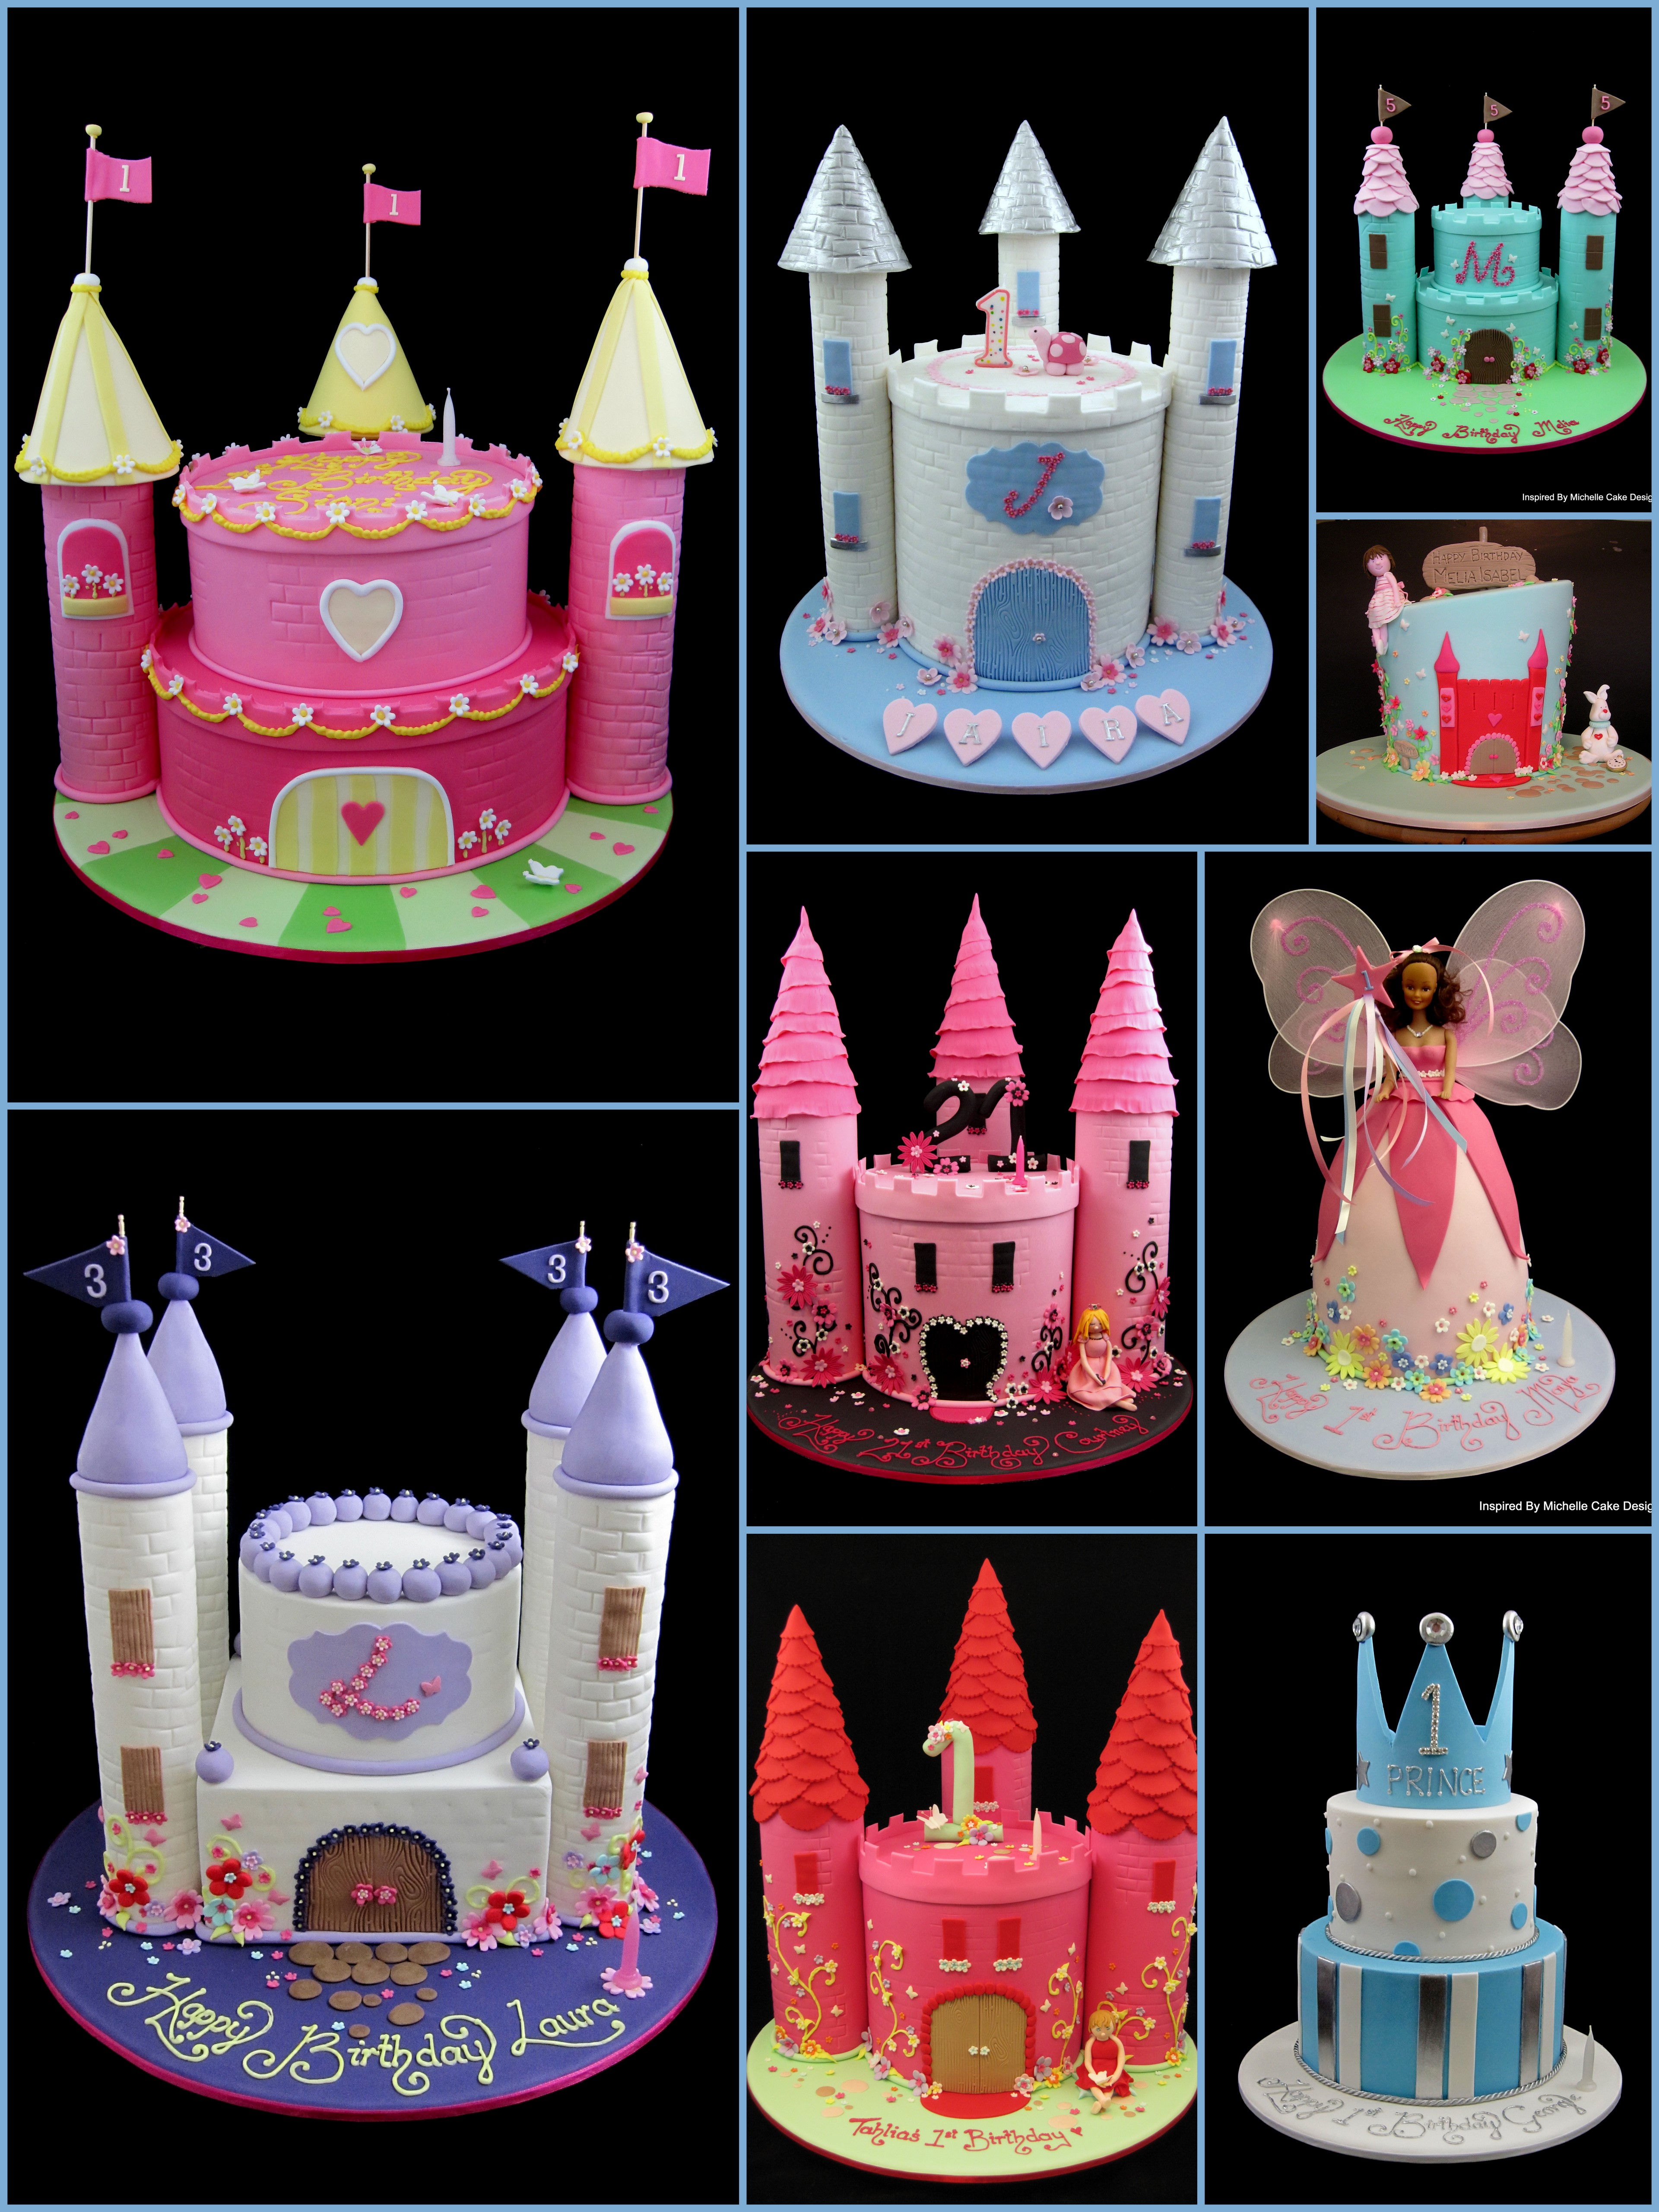 princess castle cake ideas inspired by michelle cake designs  sc 1 st  Inspired By Michelle - WordPress.com & princess cake | Inspired By Michelle